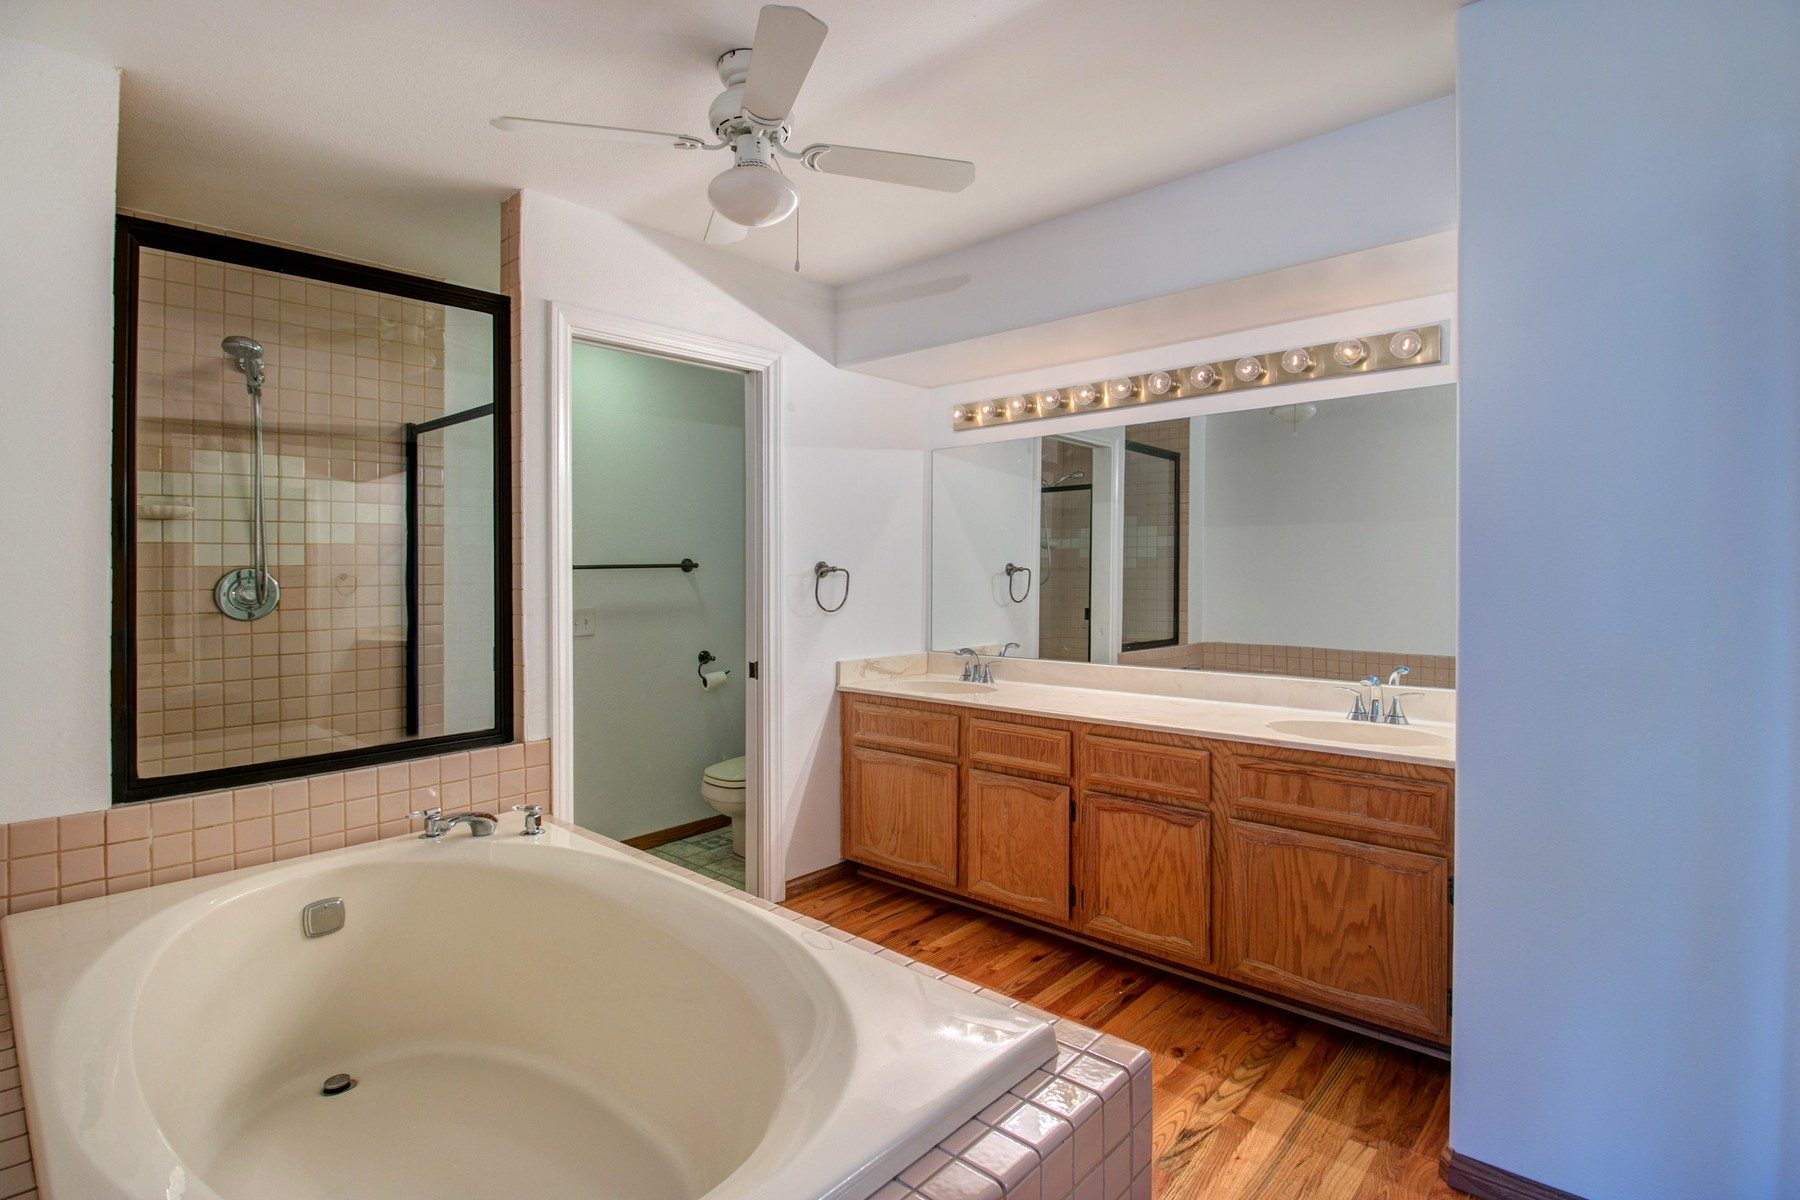 Additional photo for property listing at 1055 Donahue Street, Suite 7  圣地亚哥, 加利福尼亚州 92110 美国